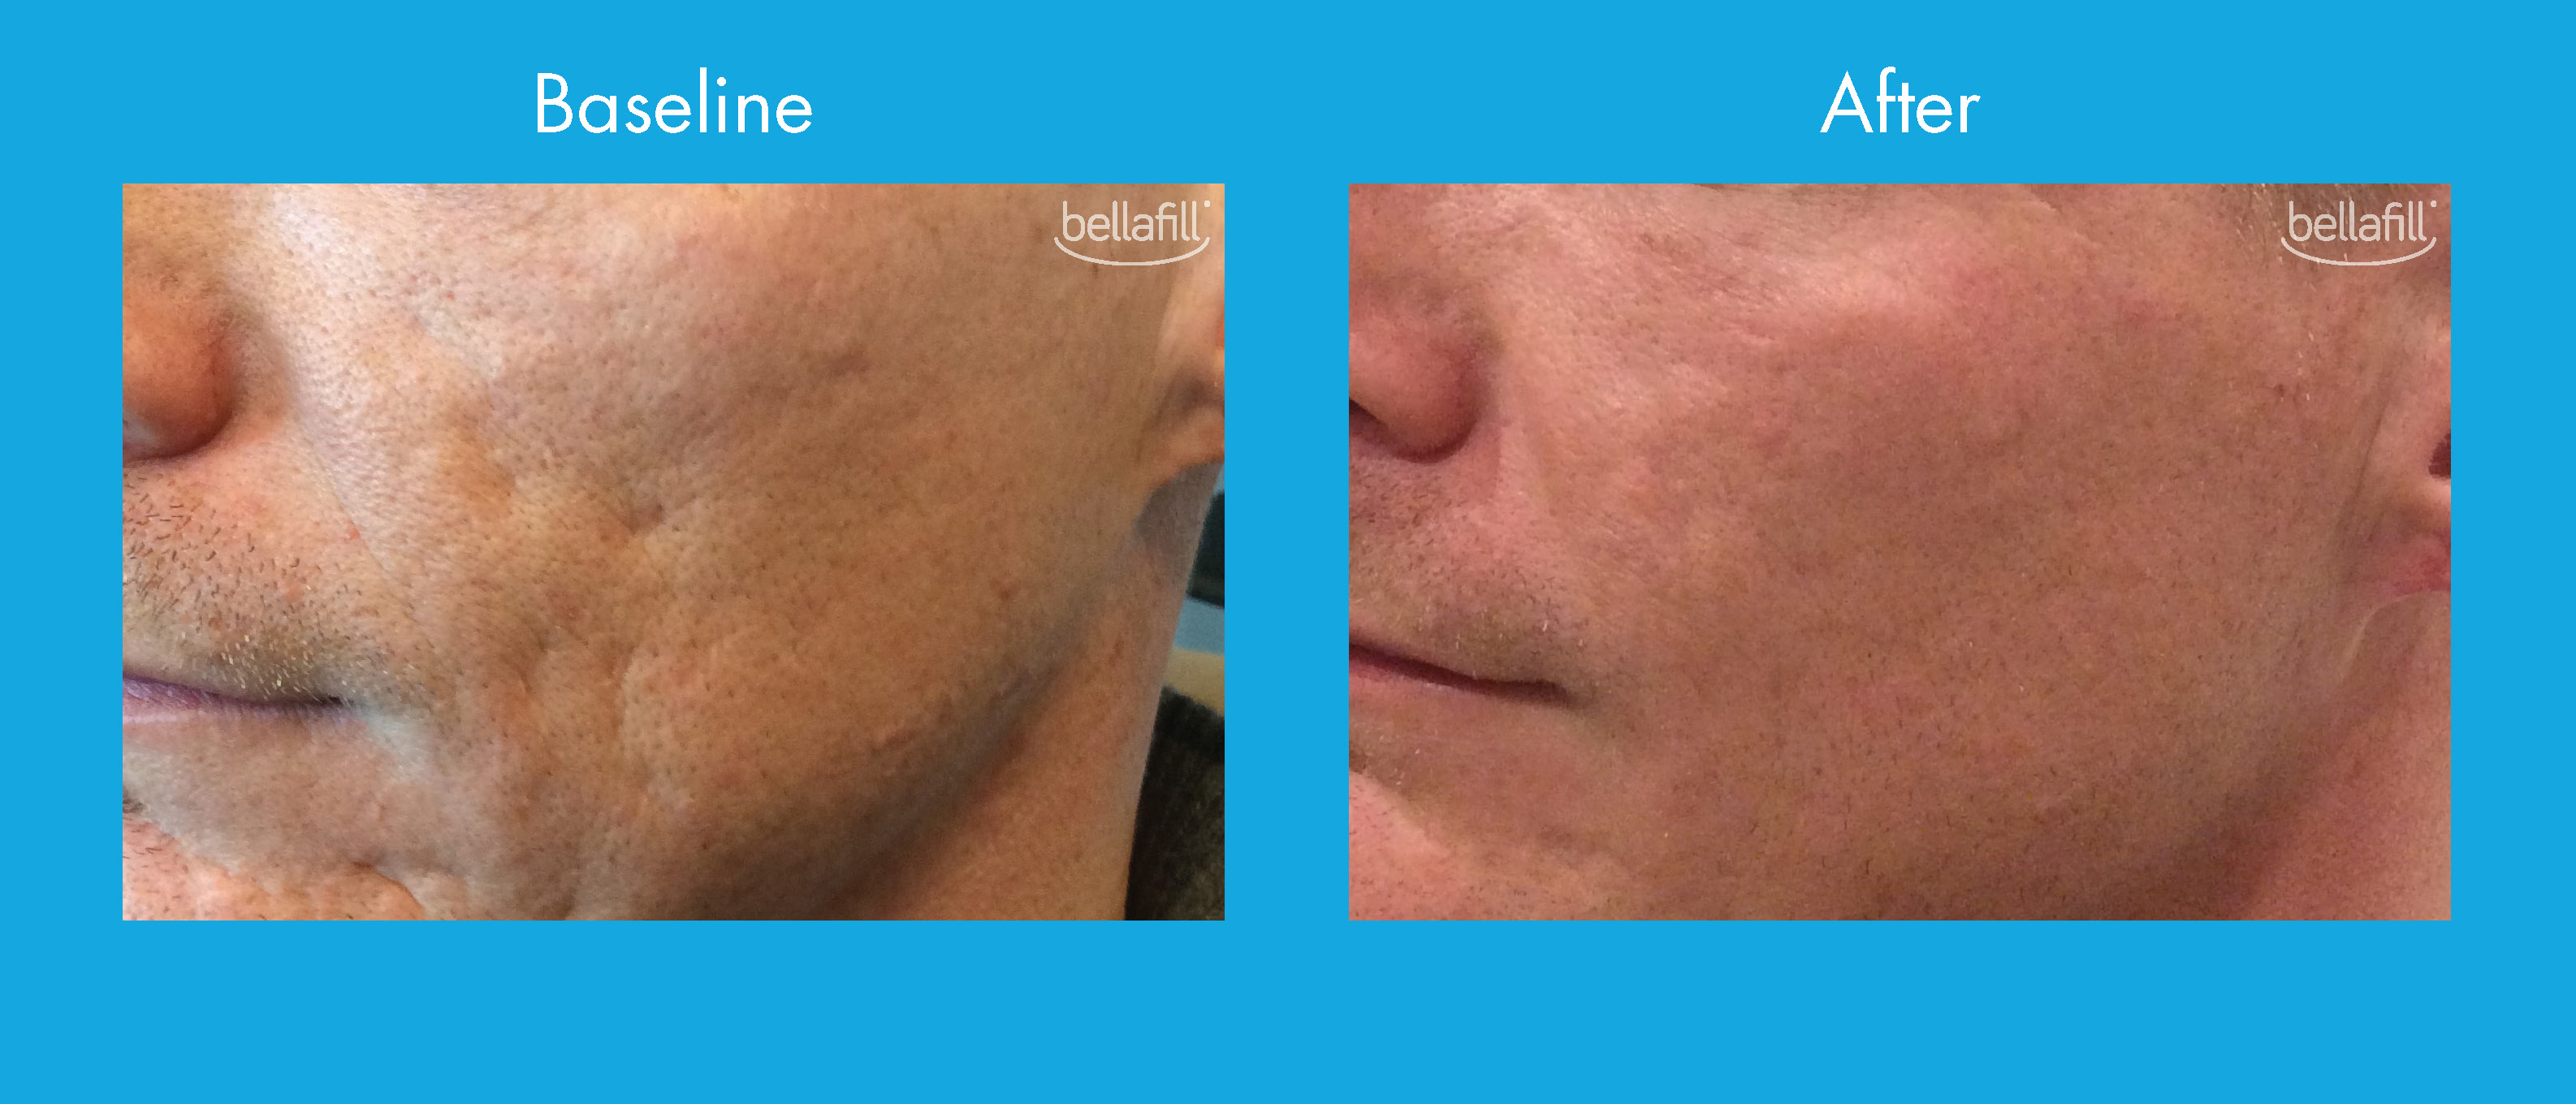 Bellafill Treatment For Acne Scarring In New Jersey Soma Skin Laser